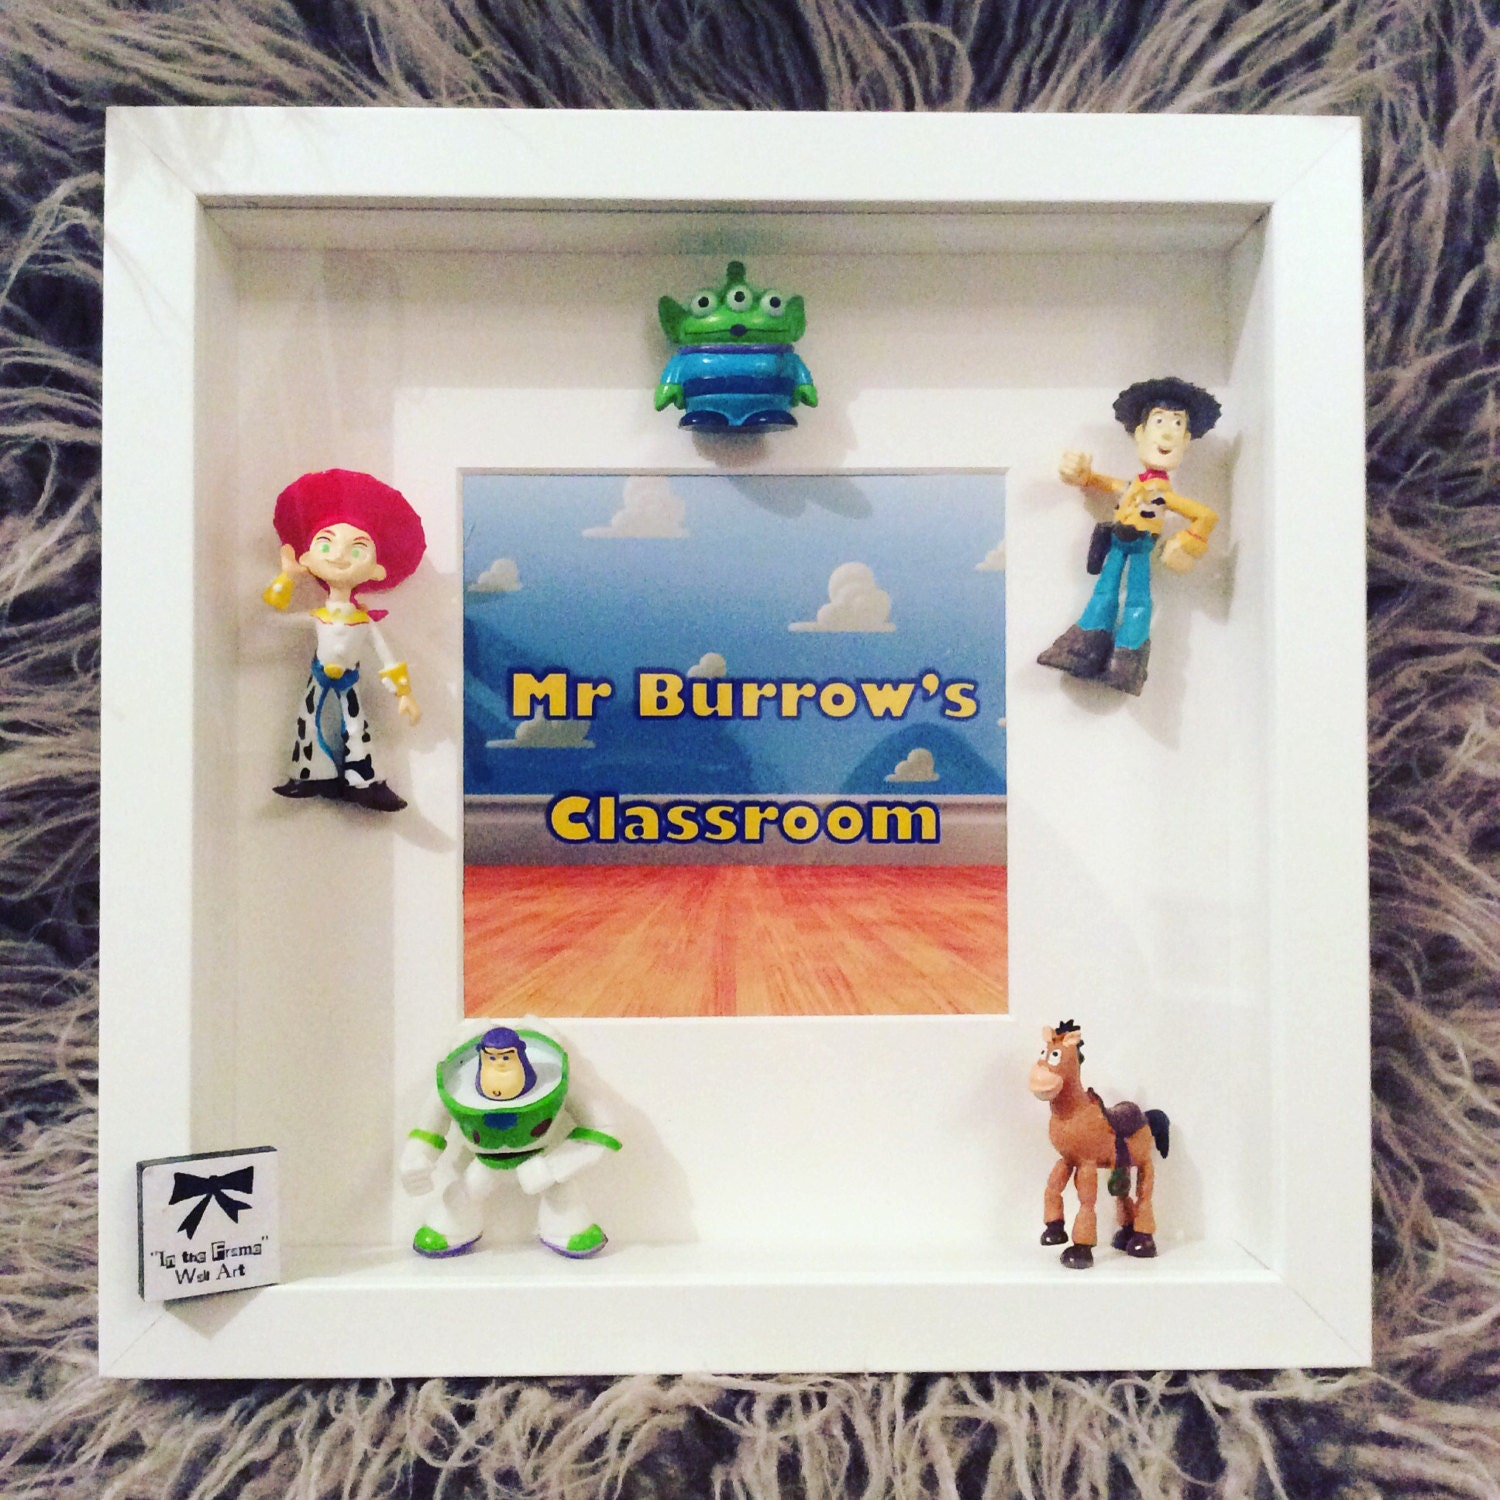 Toy story personalised frame great boys/girls gift for bedroom | Etsy